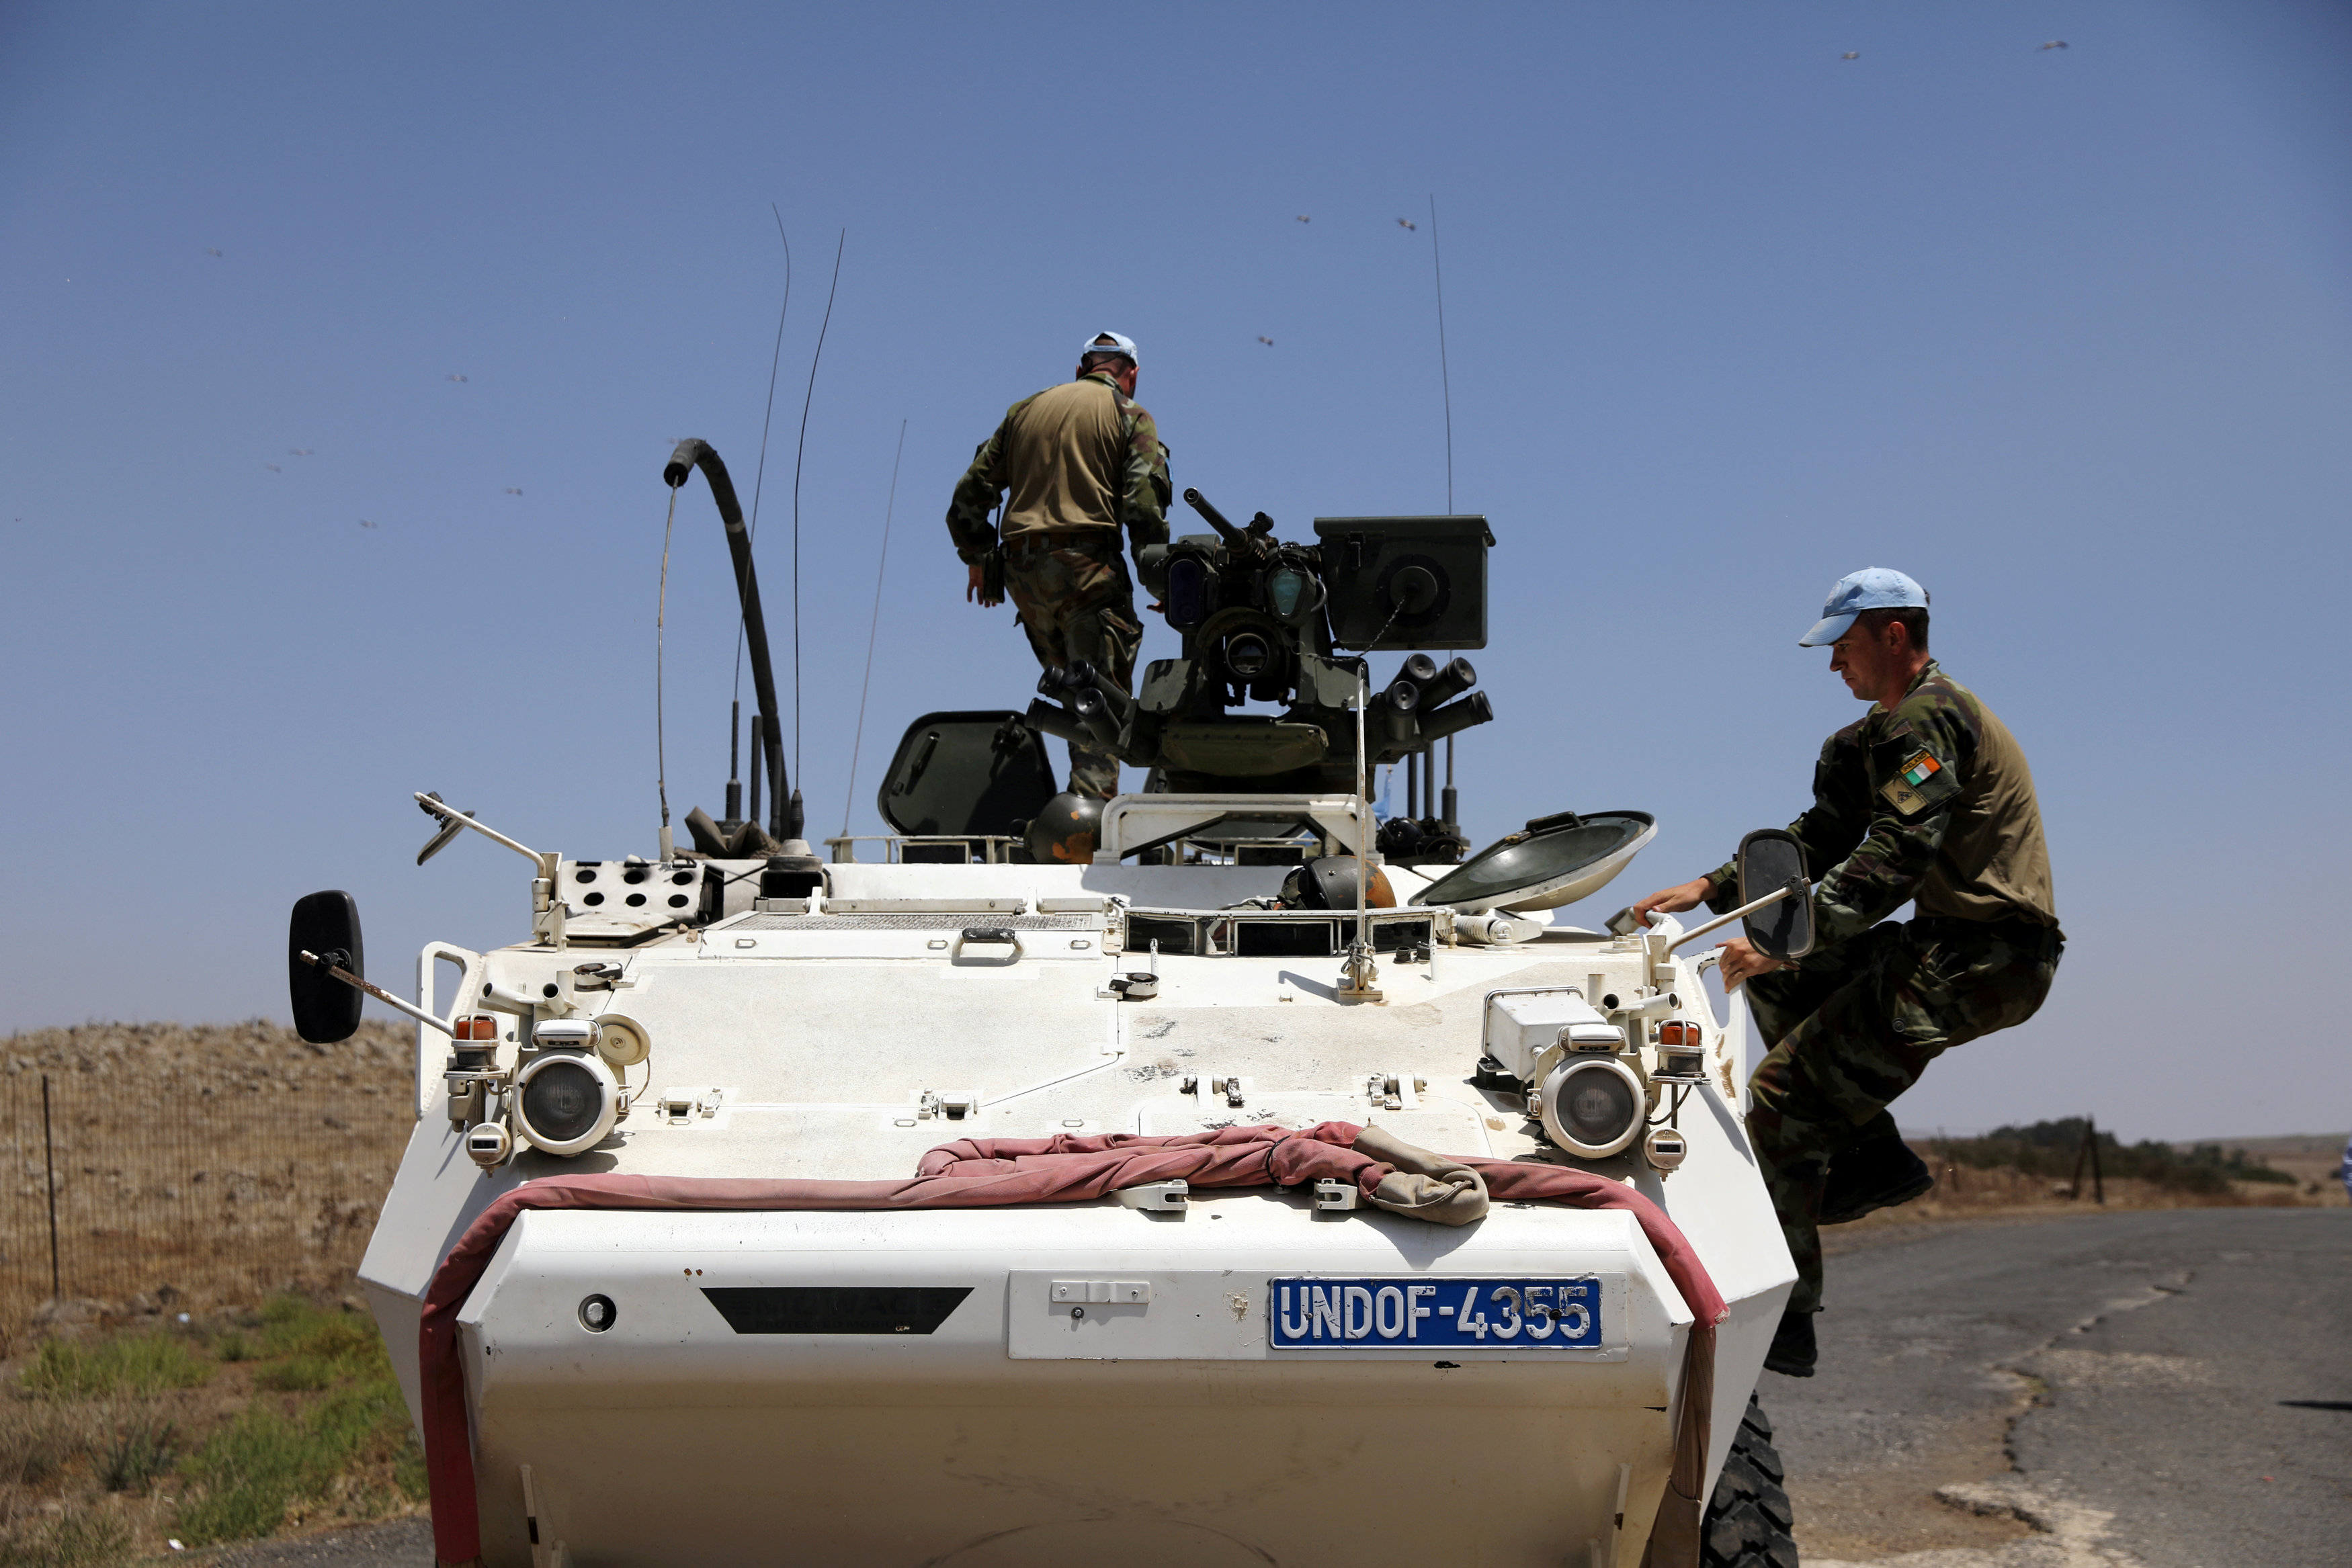 Israel, Syria to reopen Golan crossing: US envoy to UN